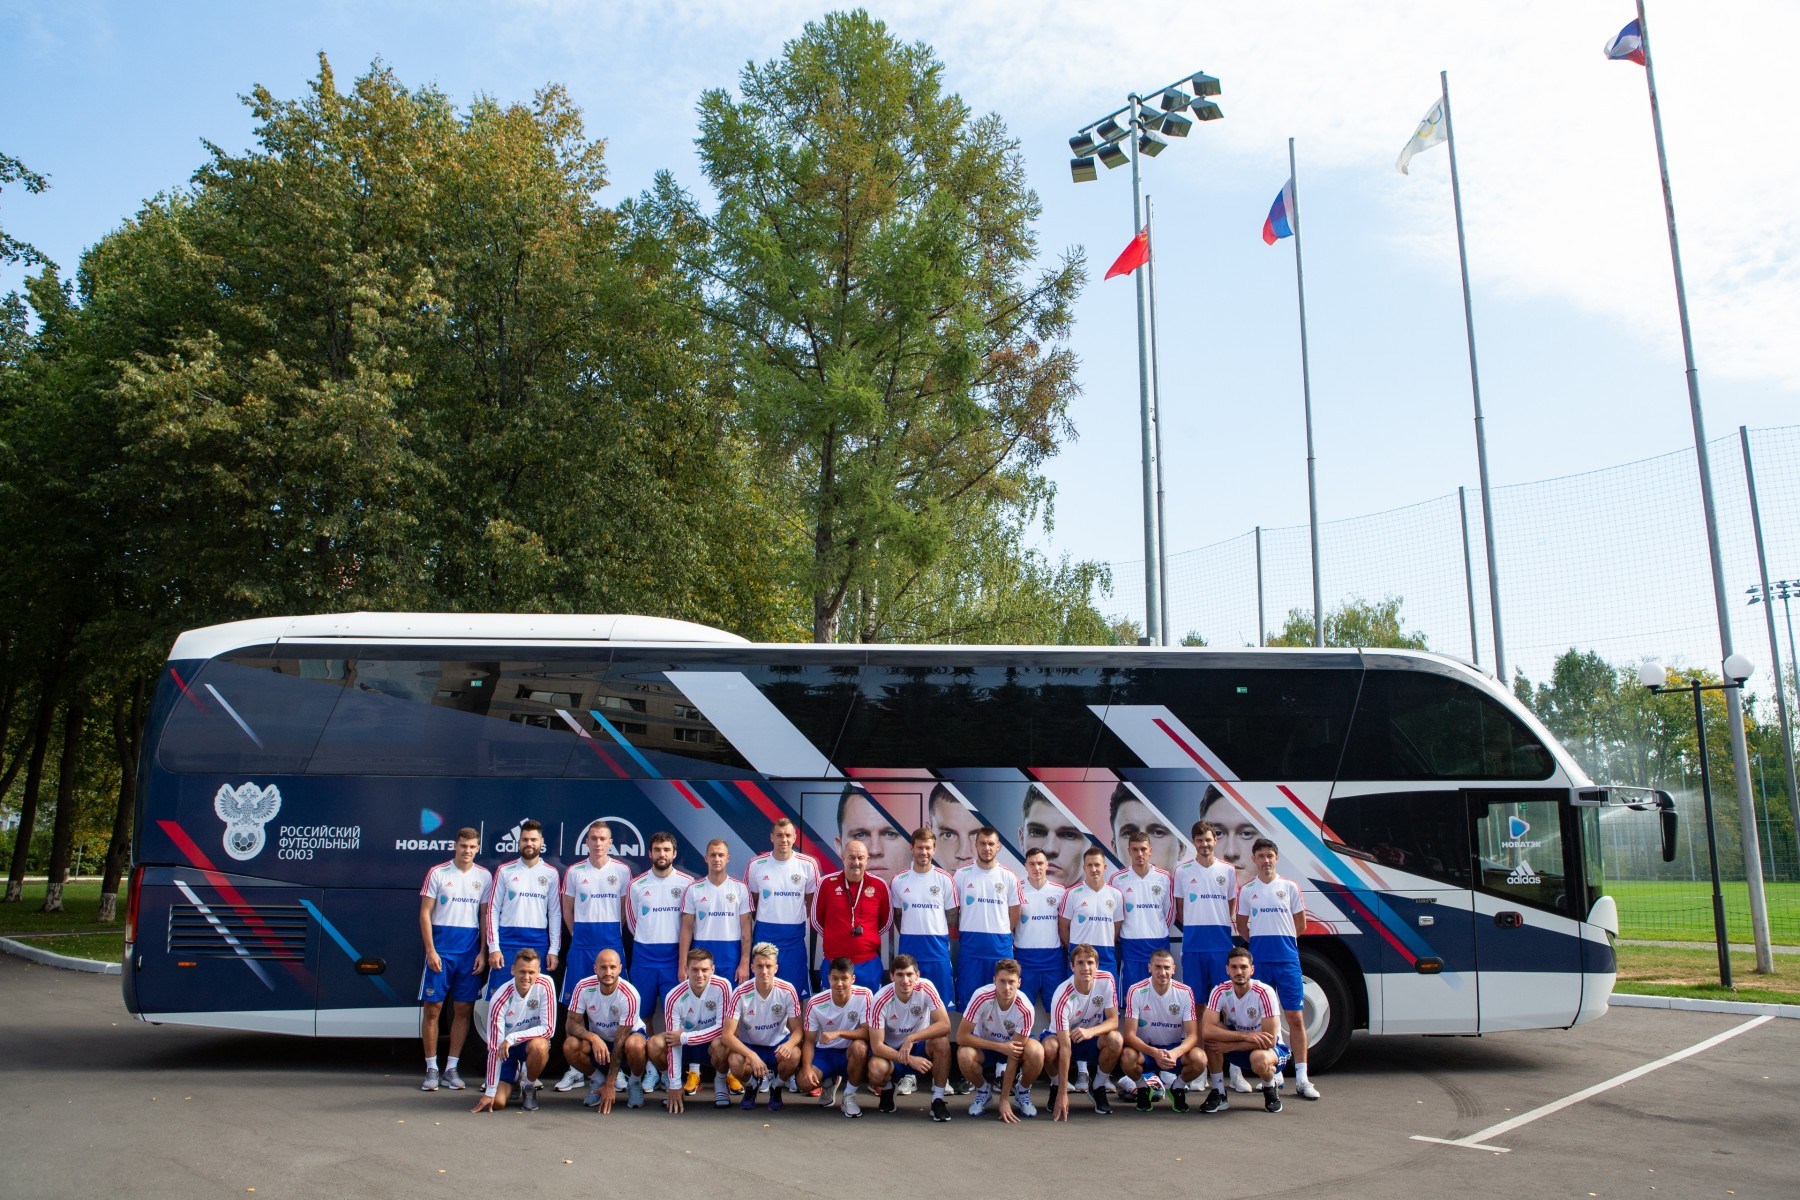 E_Bus_EOT_Team_Bus_Russia_2019-01